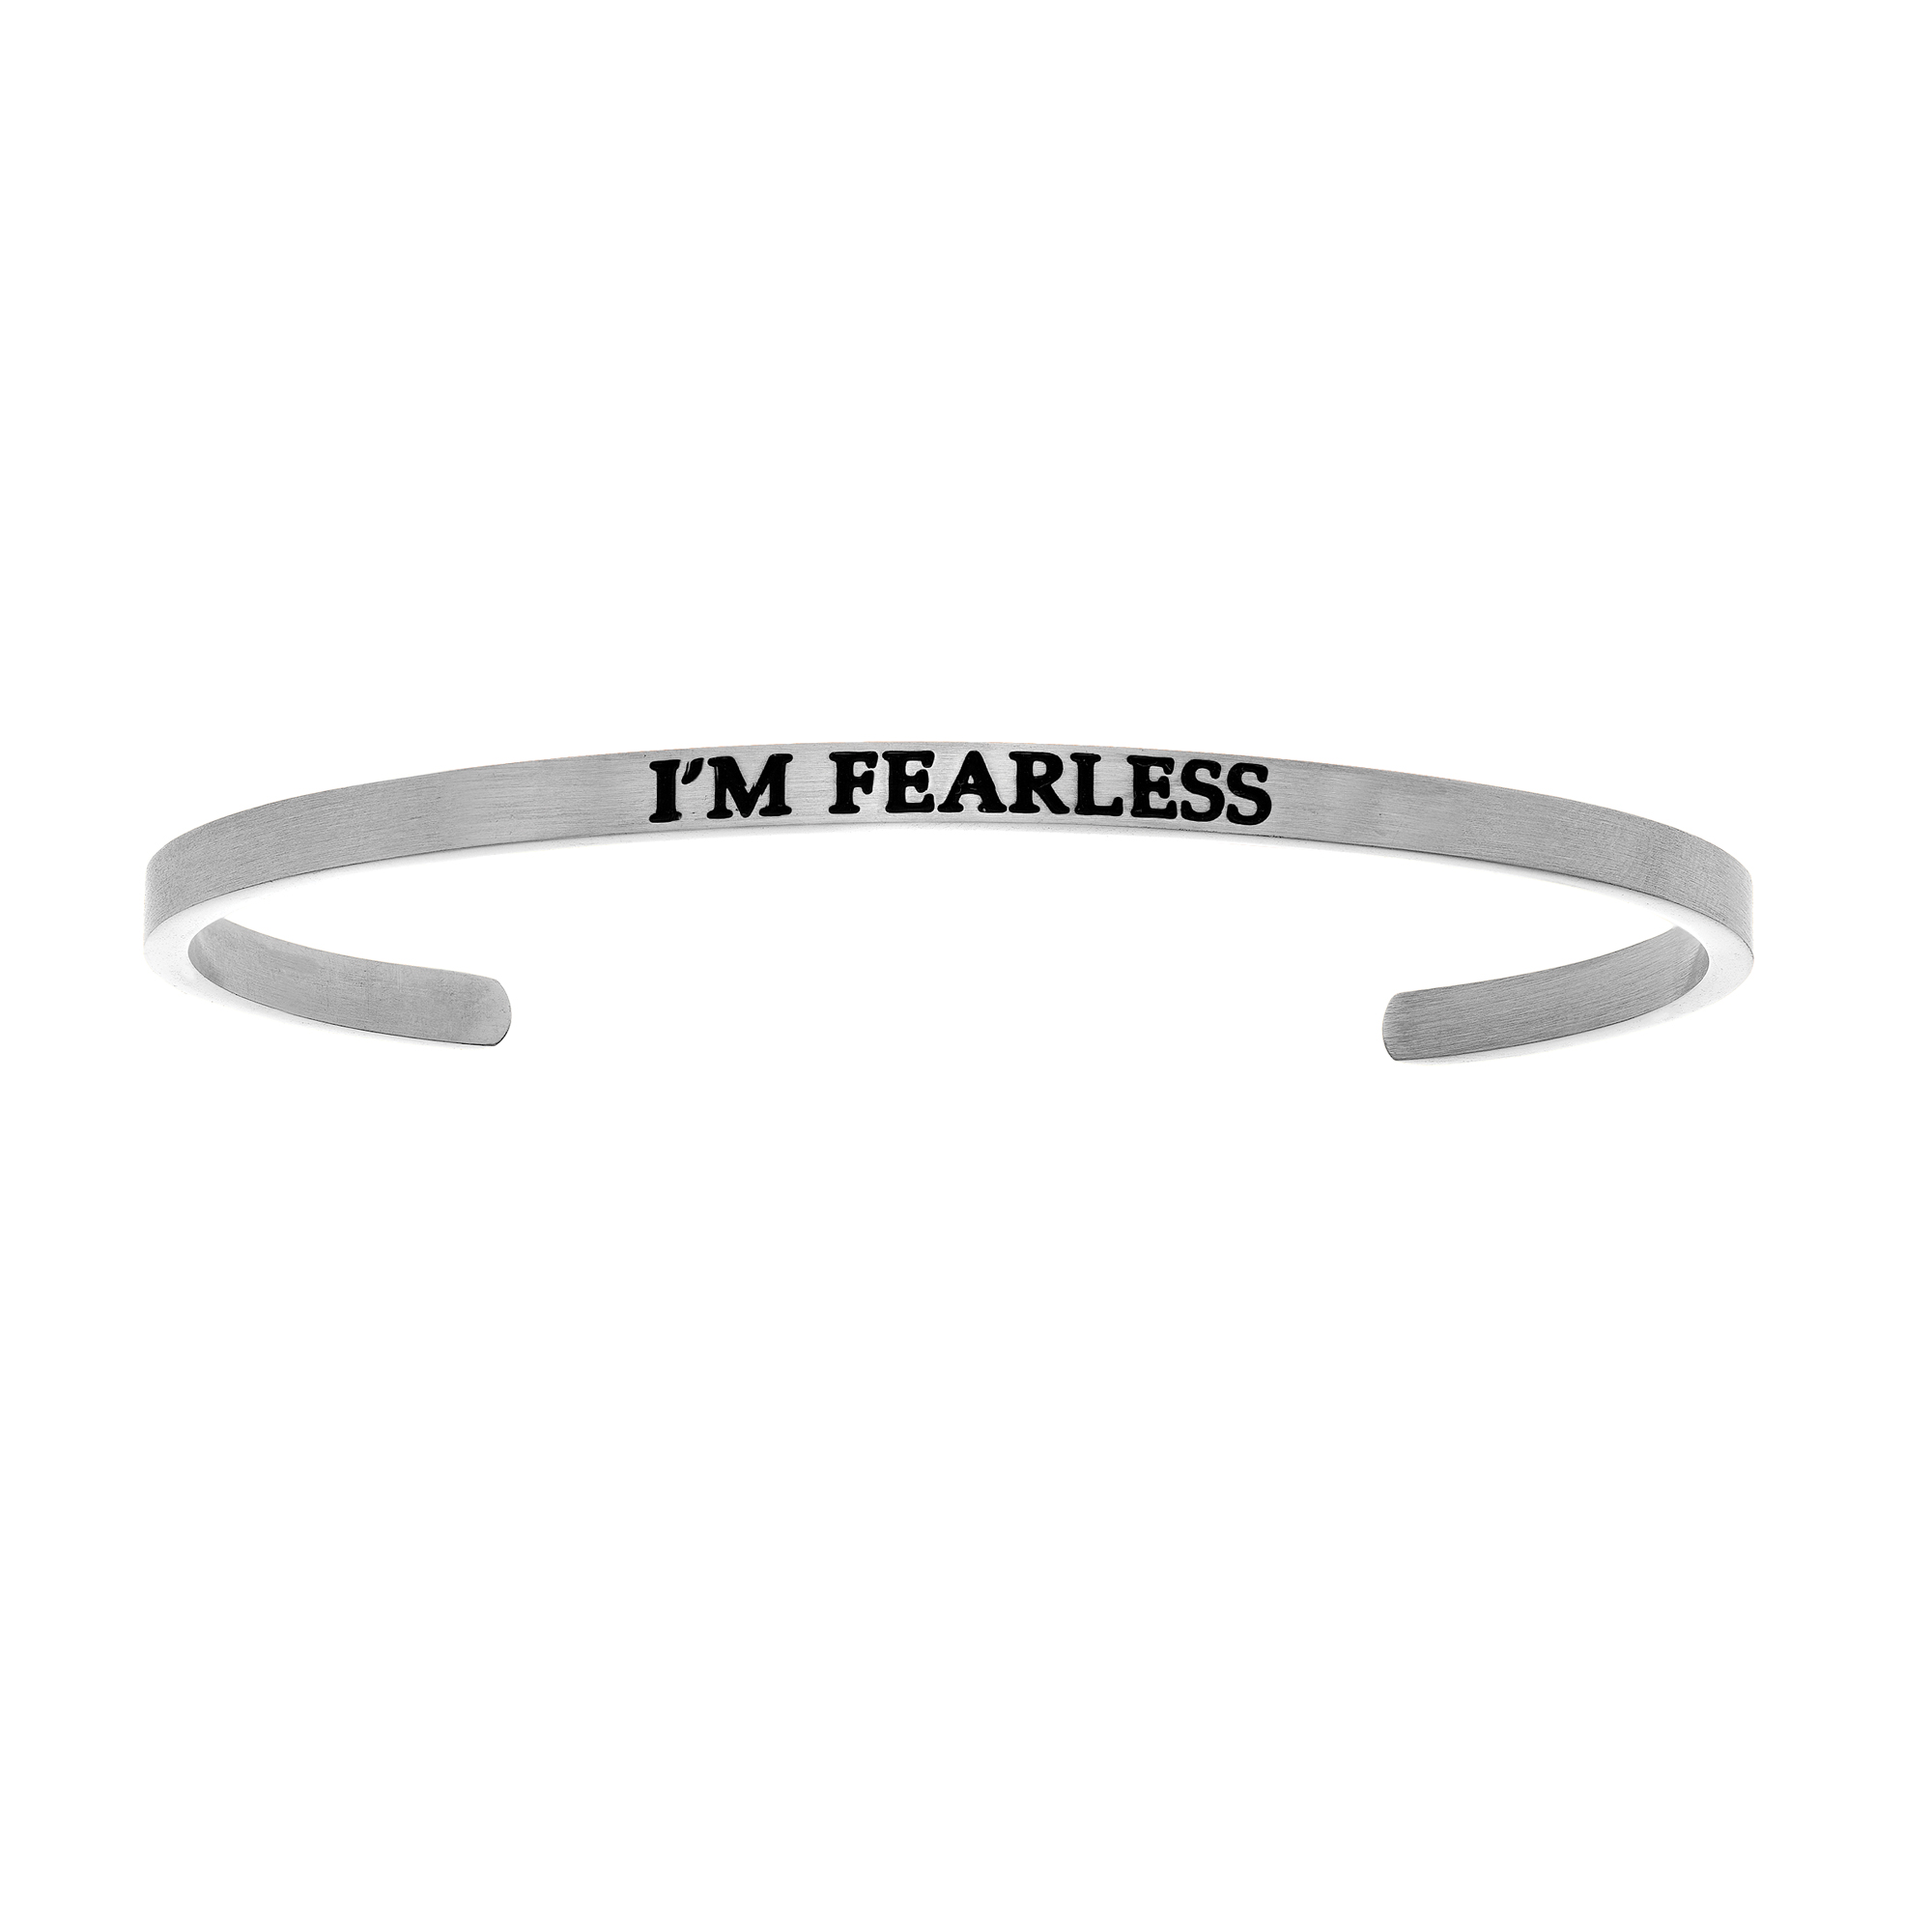 Intuitions Stainless Steel I'M FEARLESS Diamond Accent Cuff Bangle Bracelet, 7″